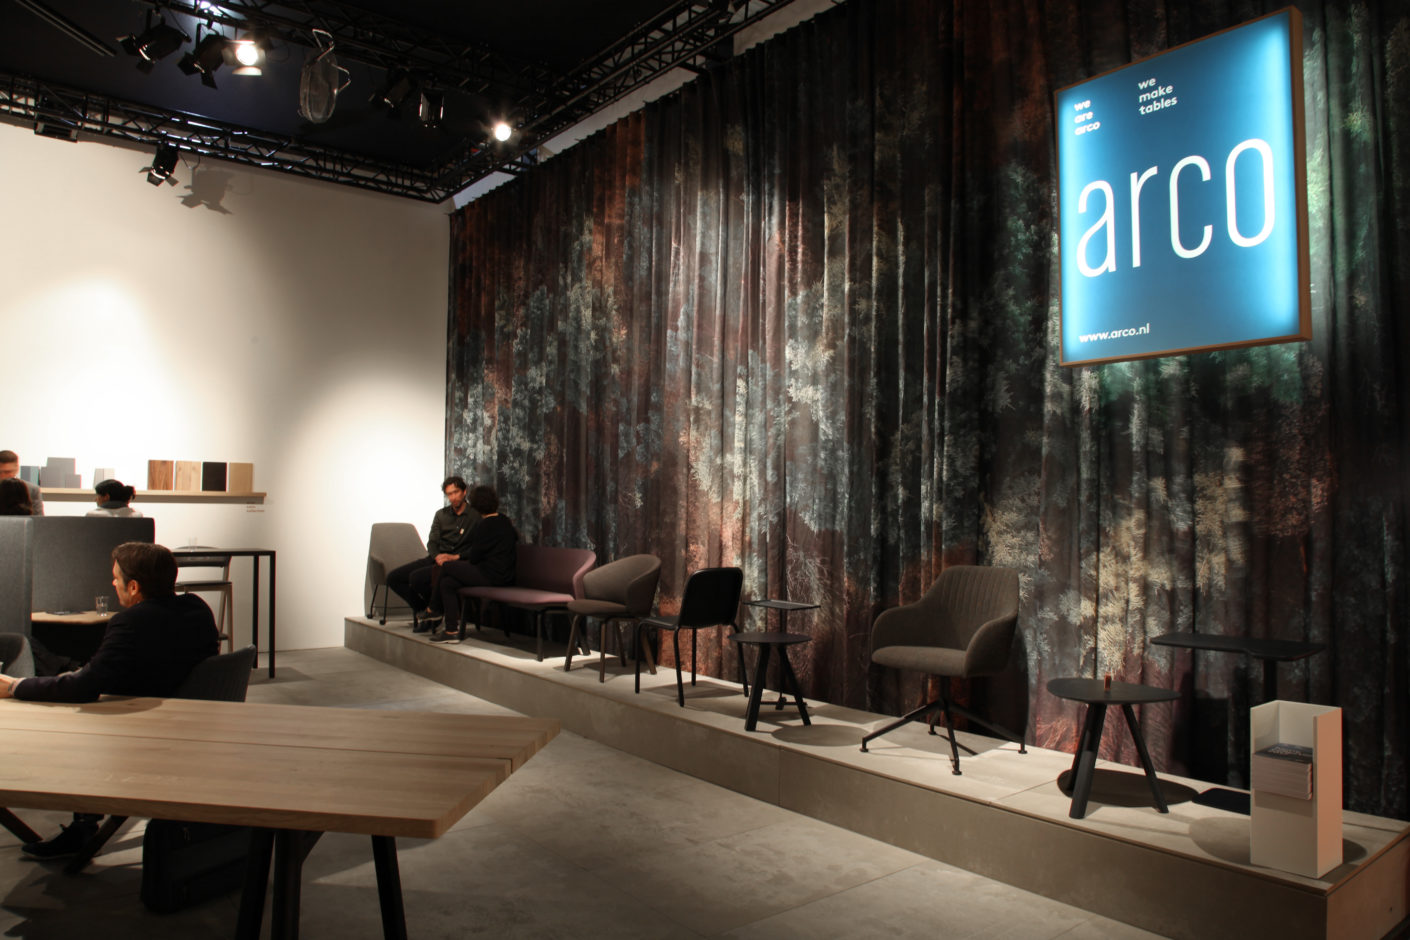 The Arco booth at the Salone del Mobile in Milan.